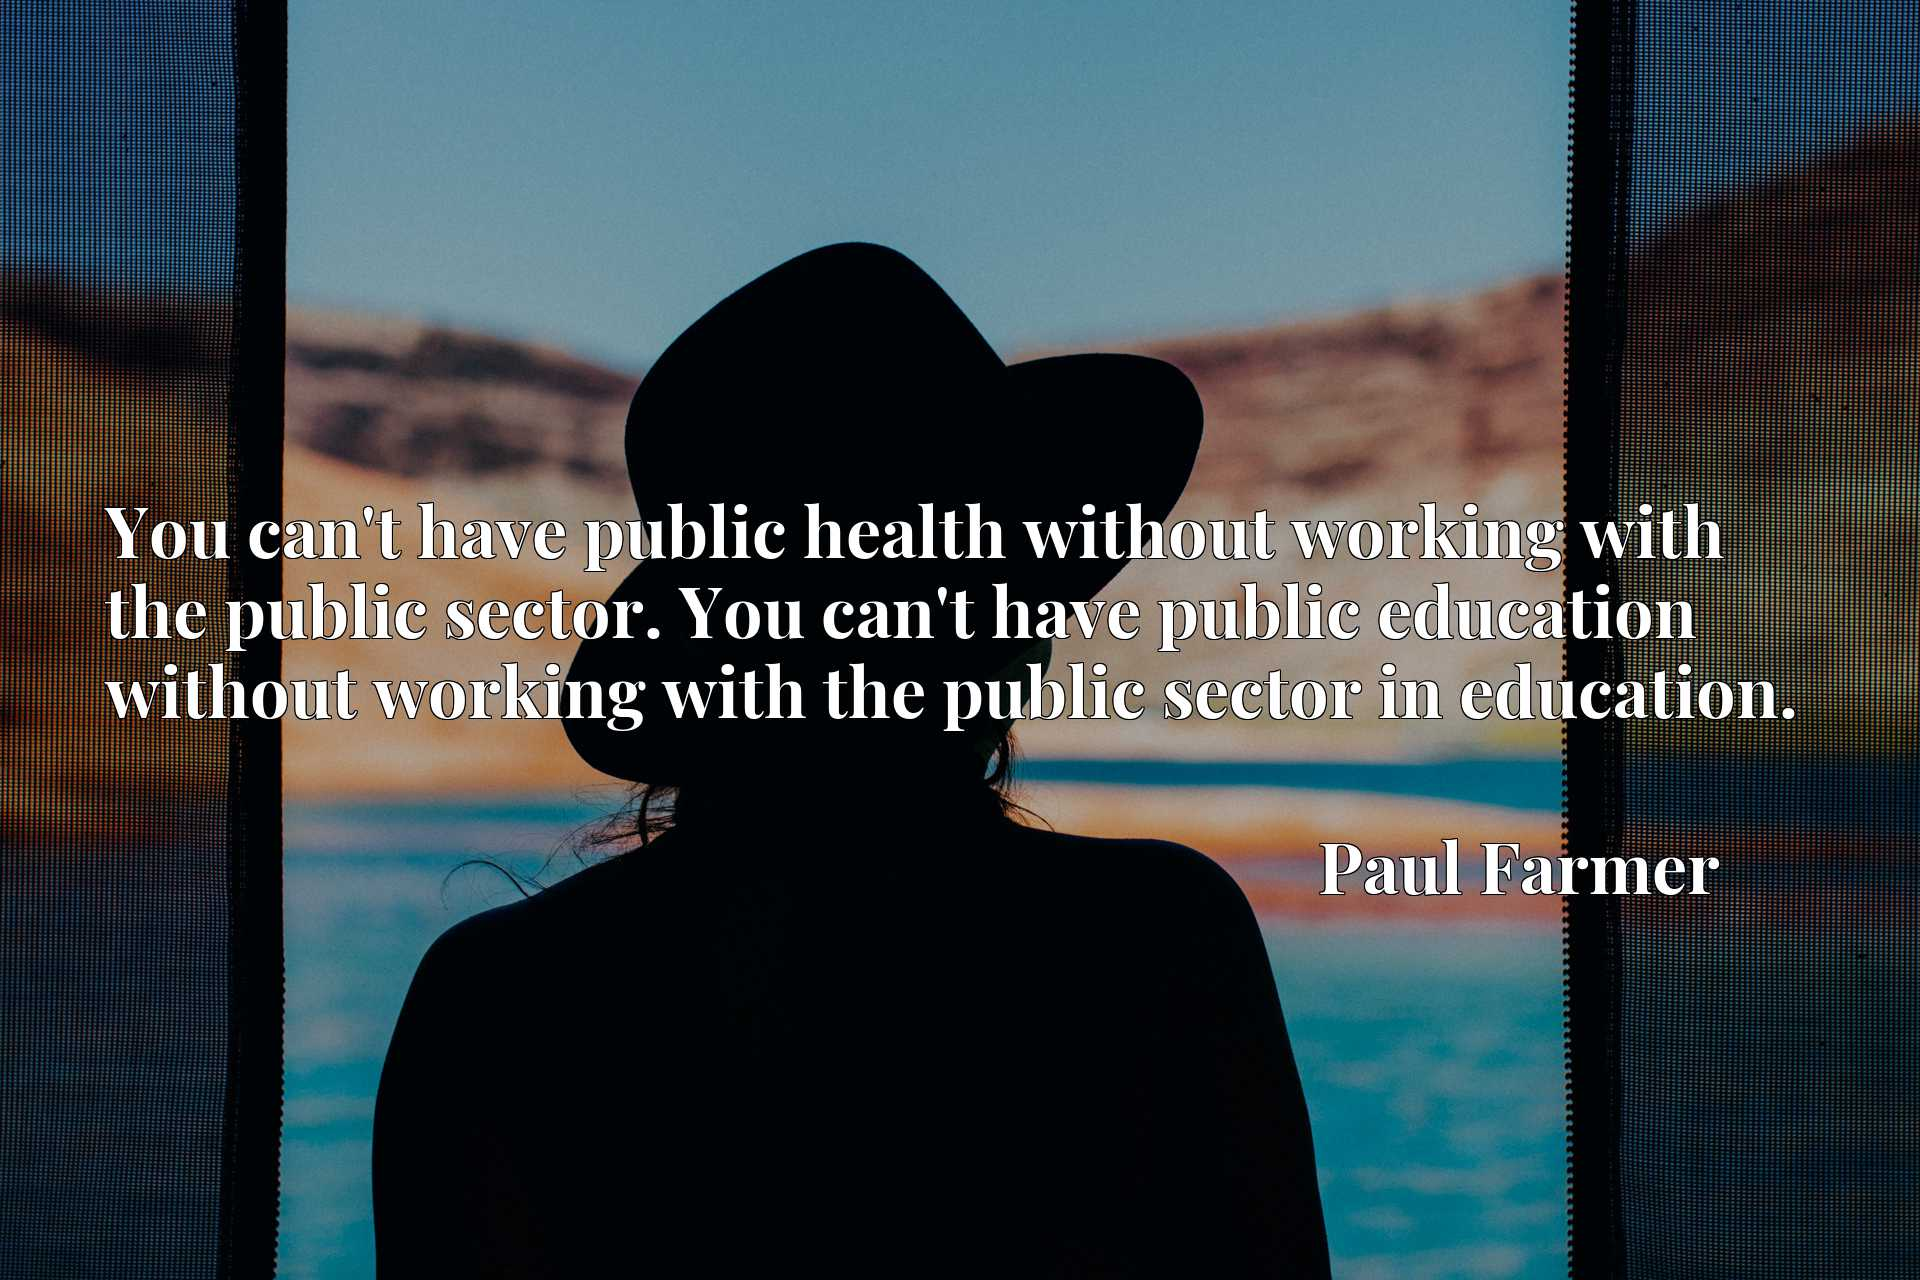 You can't have public health without working with the public sector. You can't have public education without working with the public sector in education.